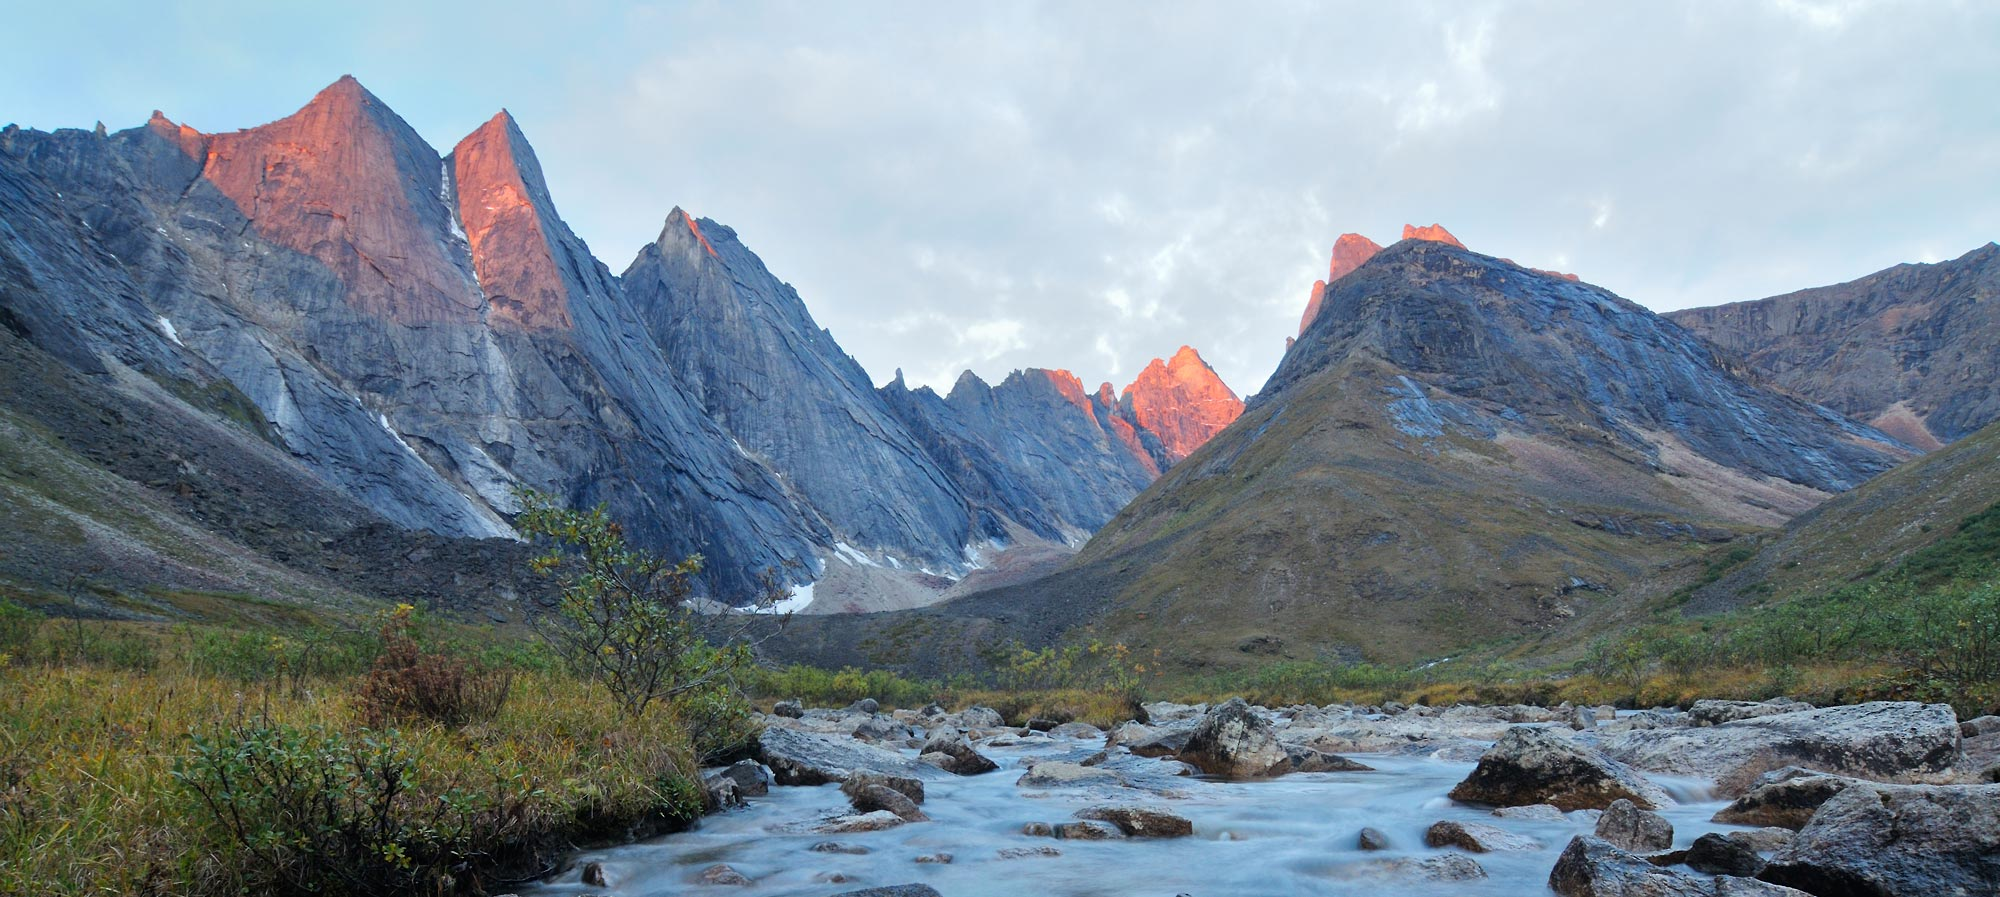 Gates of the Arctic National park hiking trips The Maidens, Arrigetch Peaks.